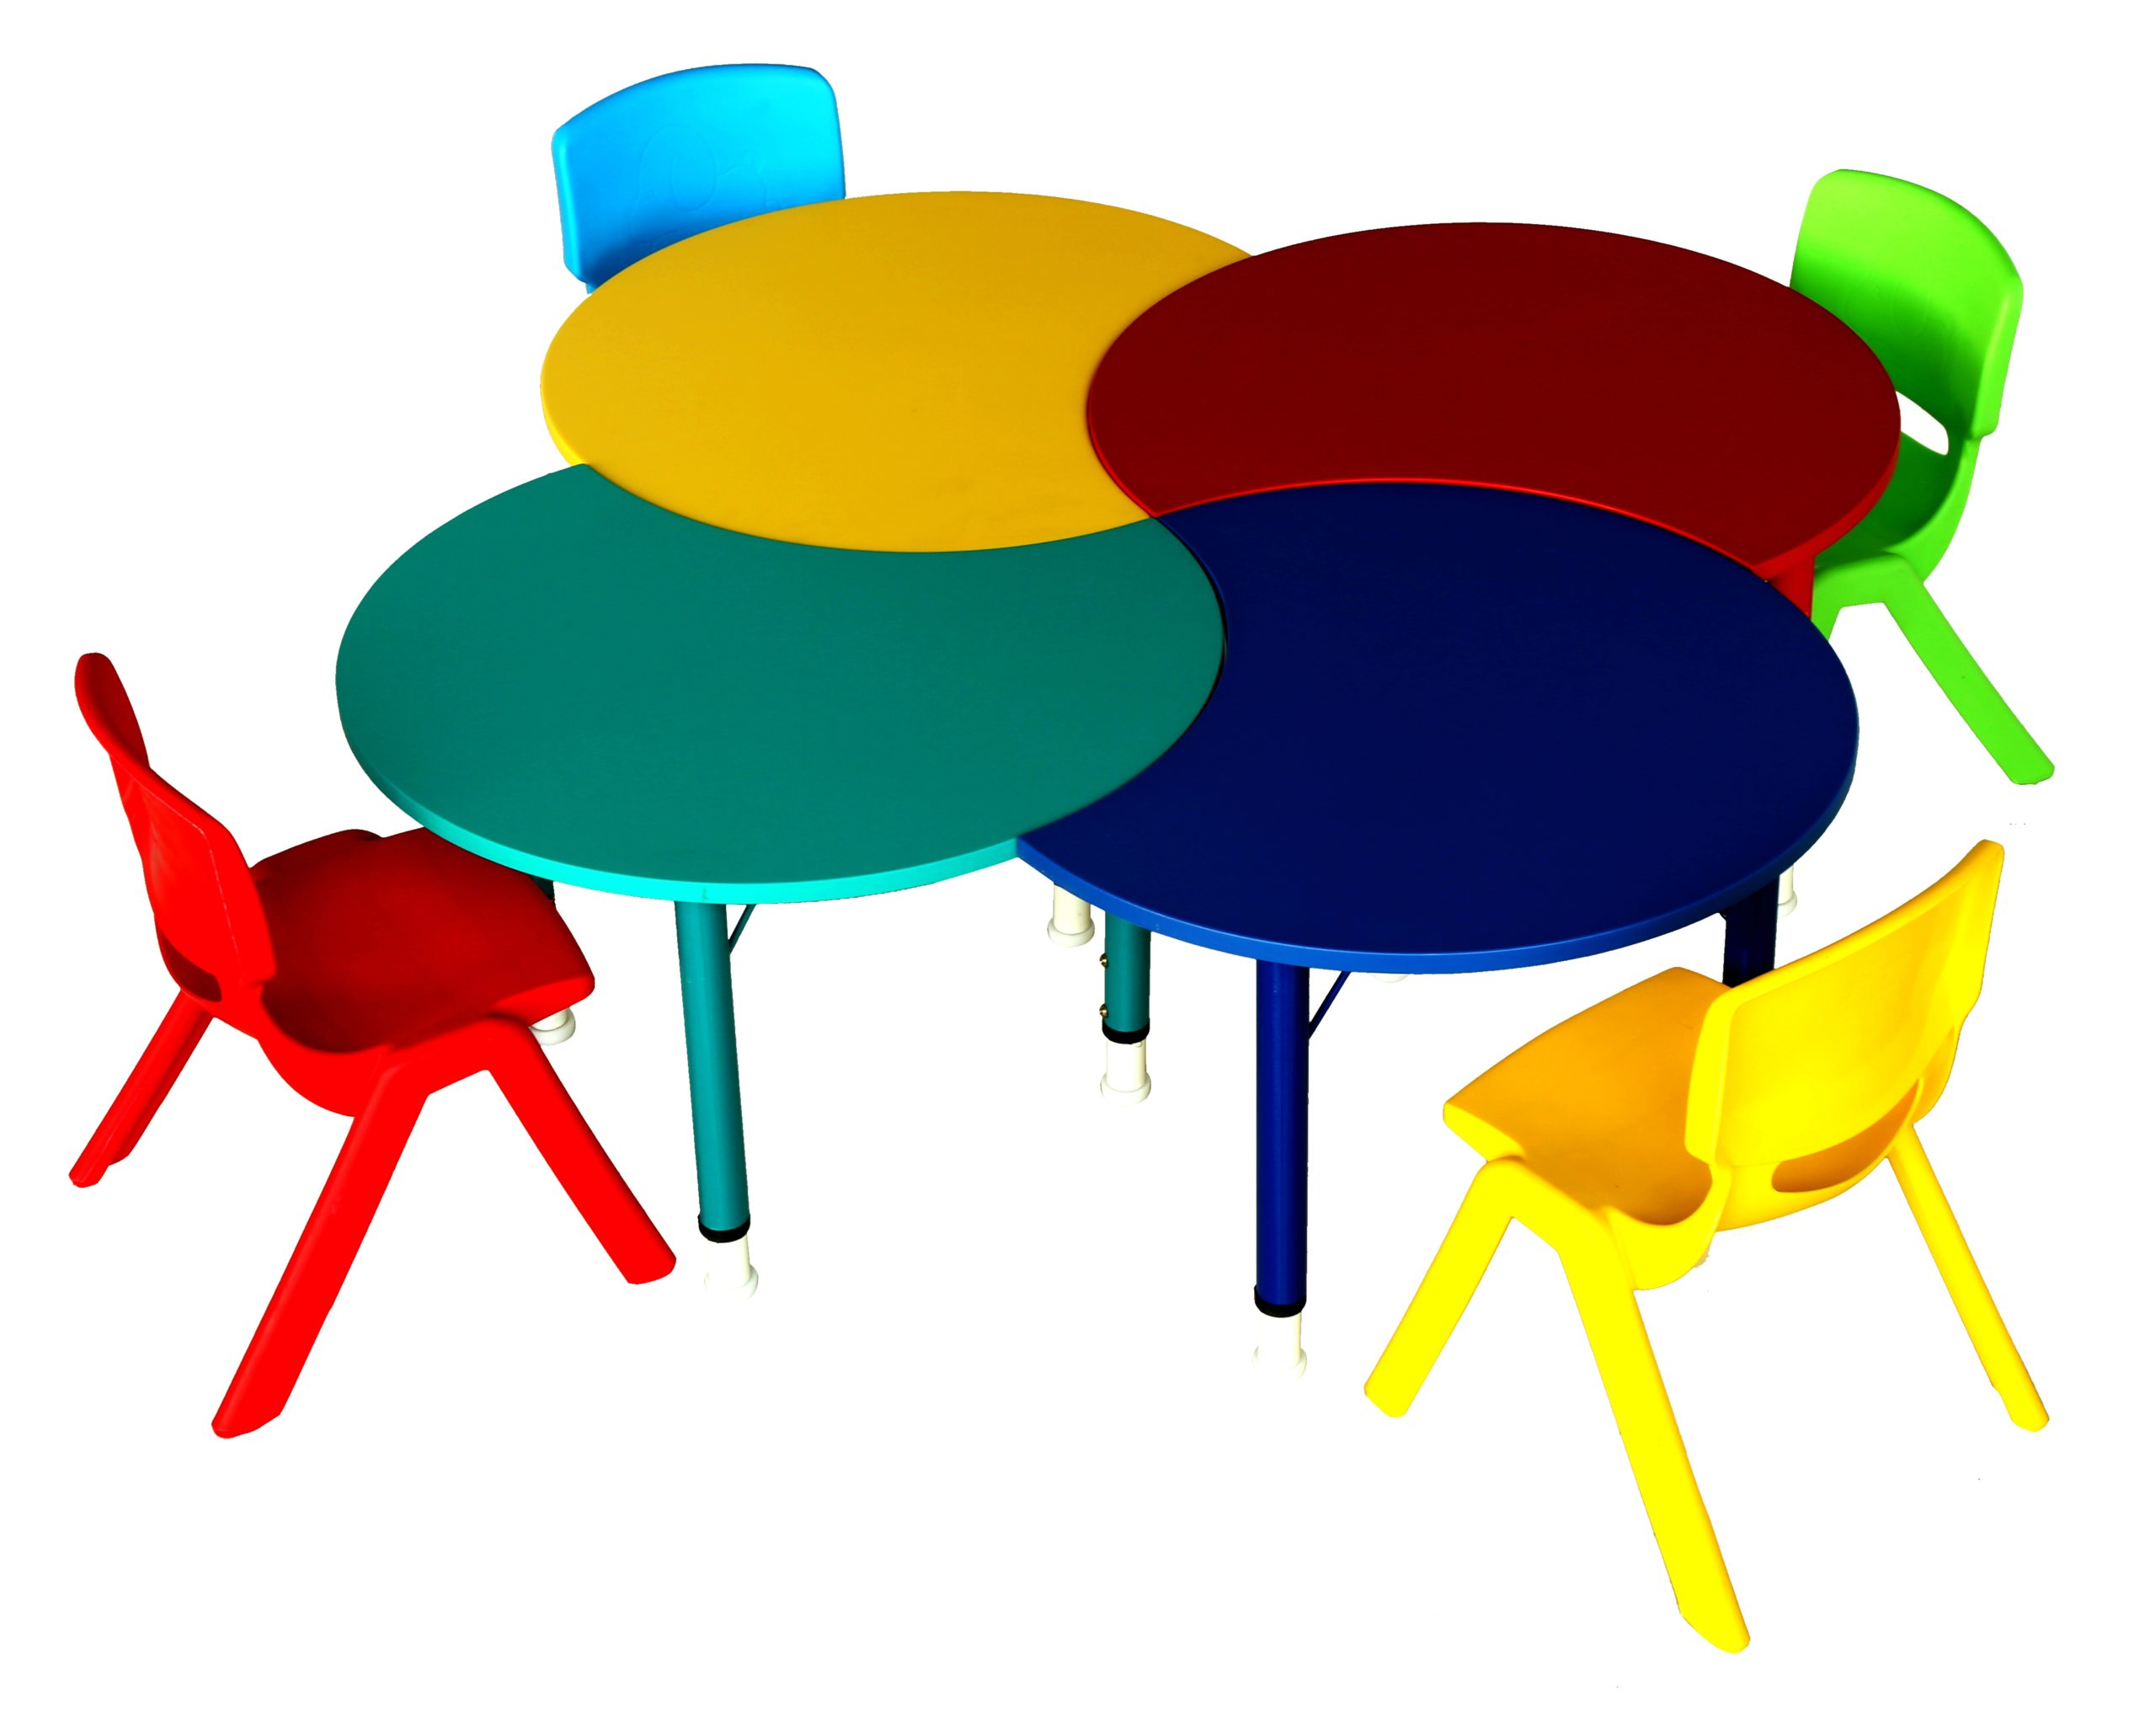 Multicolour quartette height adjustable kindergarten table with 4 multi-color chairs